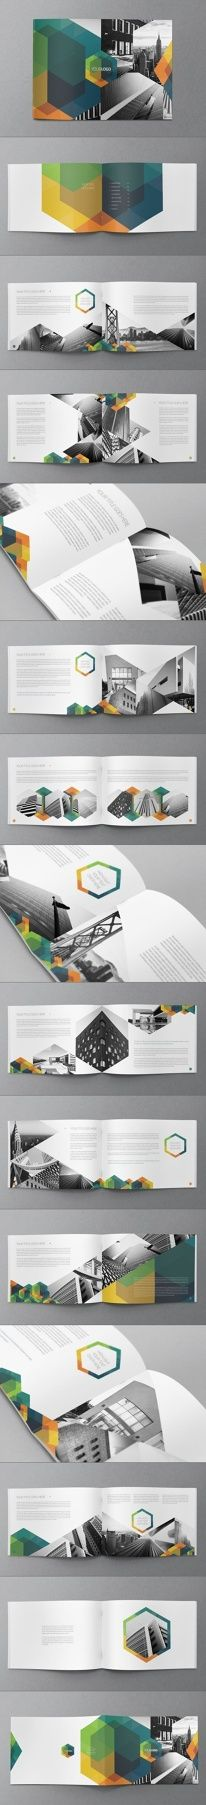 Hexo Brochure Design by Abra Design | Graphic Design